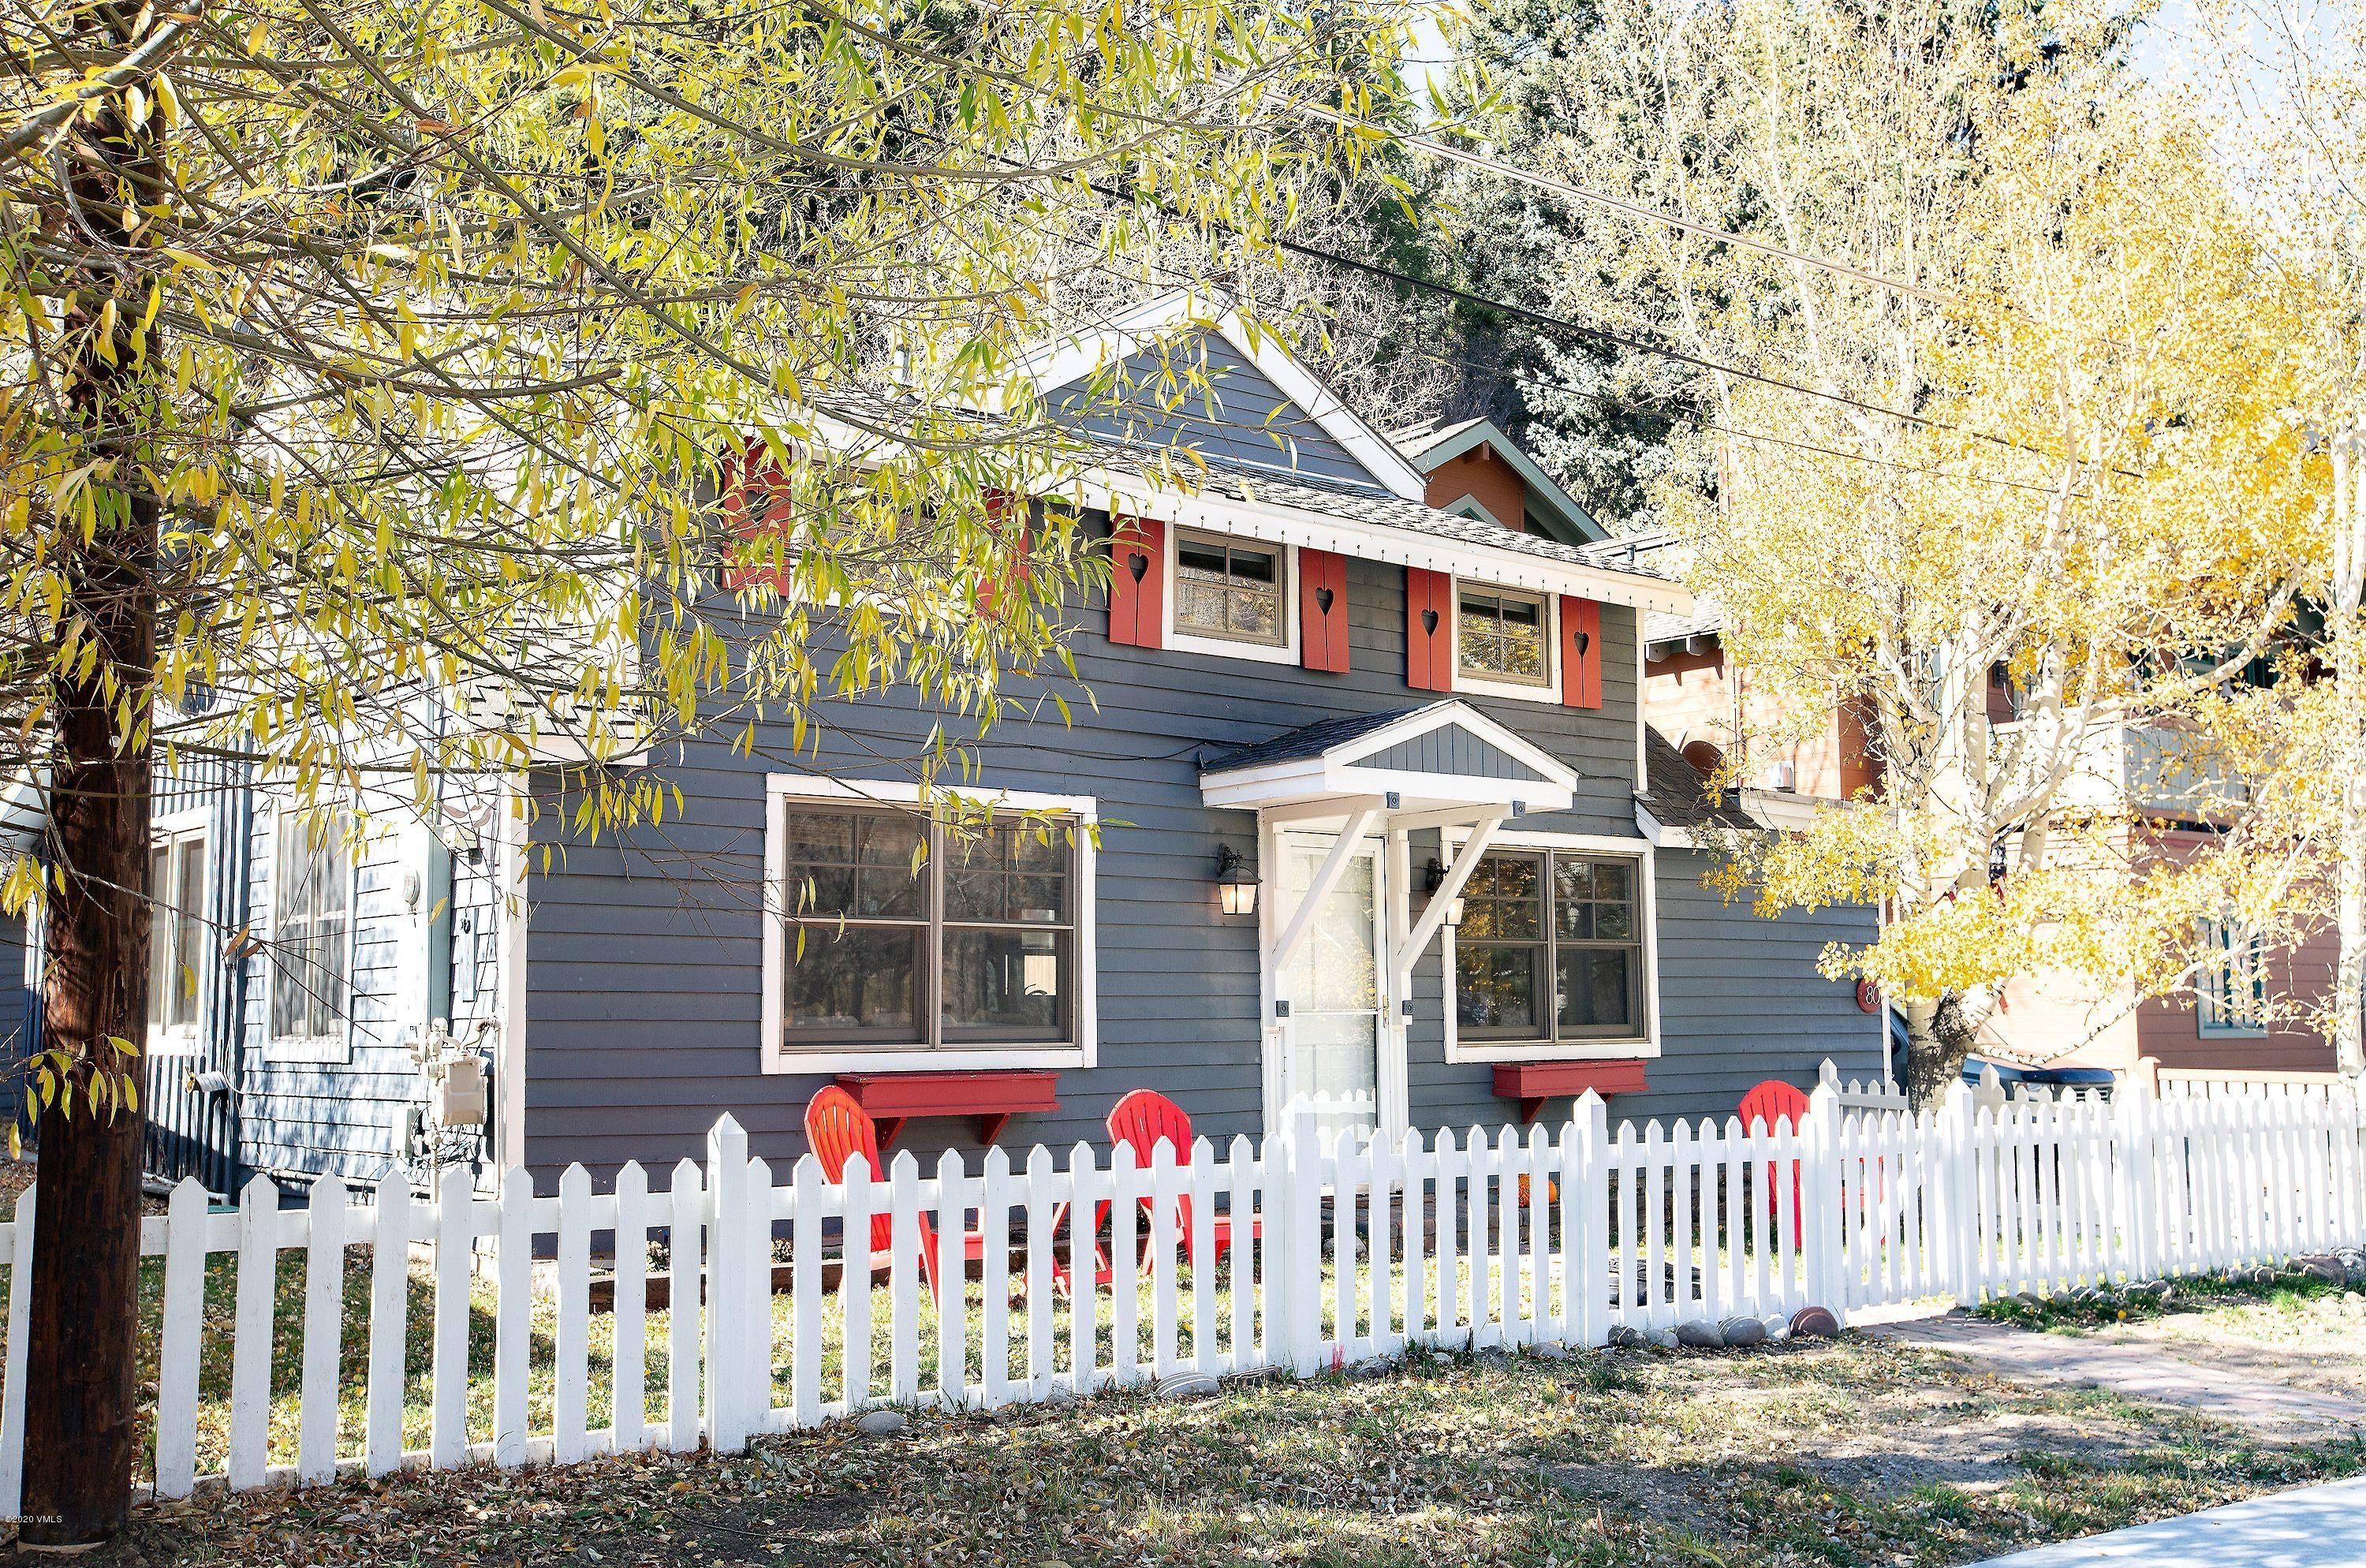 This beautiful and inviting home in Minturn will dazzle you with its feel of warmth, comfort and convenience. Features include a main floor primary bedroom, two bedrooms on the second floor with a large bathroom, wood floors, a main floor laundry room, mud room and two fenced in yards. Located on the South side of town, it's a quick 10 minute walk to the shops, restaurants and Farmer's Market. In addition to how the natural light fills this home, you will love the large fenced in backyard as it is great for entertaining your guests and their pets, not to mention the amount of storage for all of your toys with the additional two sheds being sold with the home. Enjoy the short walk to Little Beach and the serenity of the Eagle River. For those that love Minturn, this is a must see.